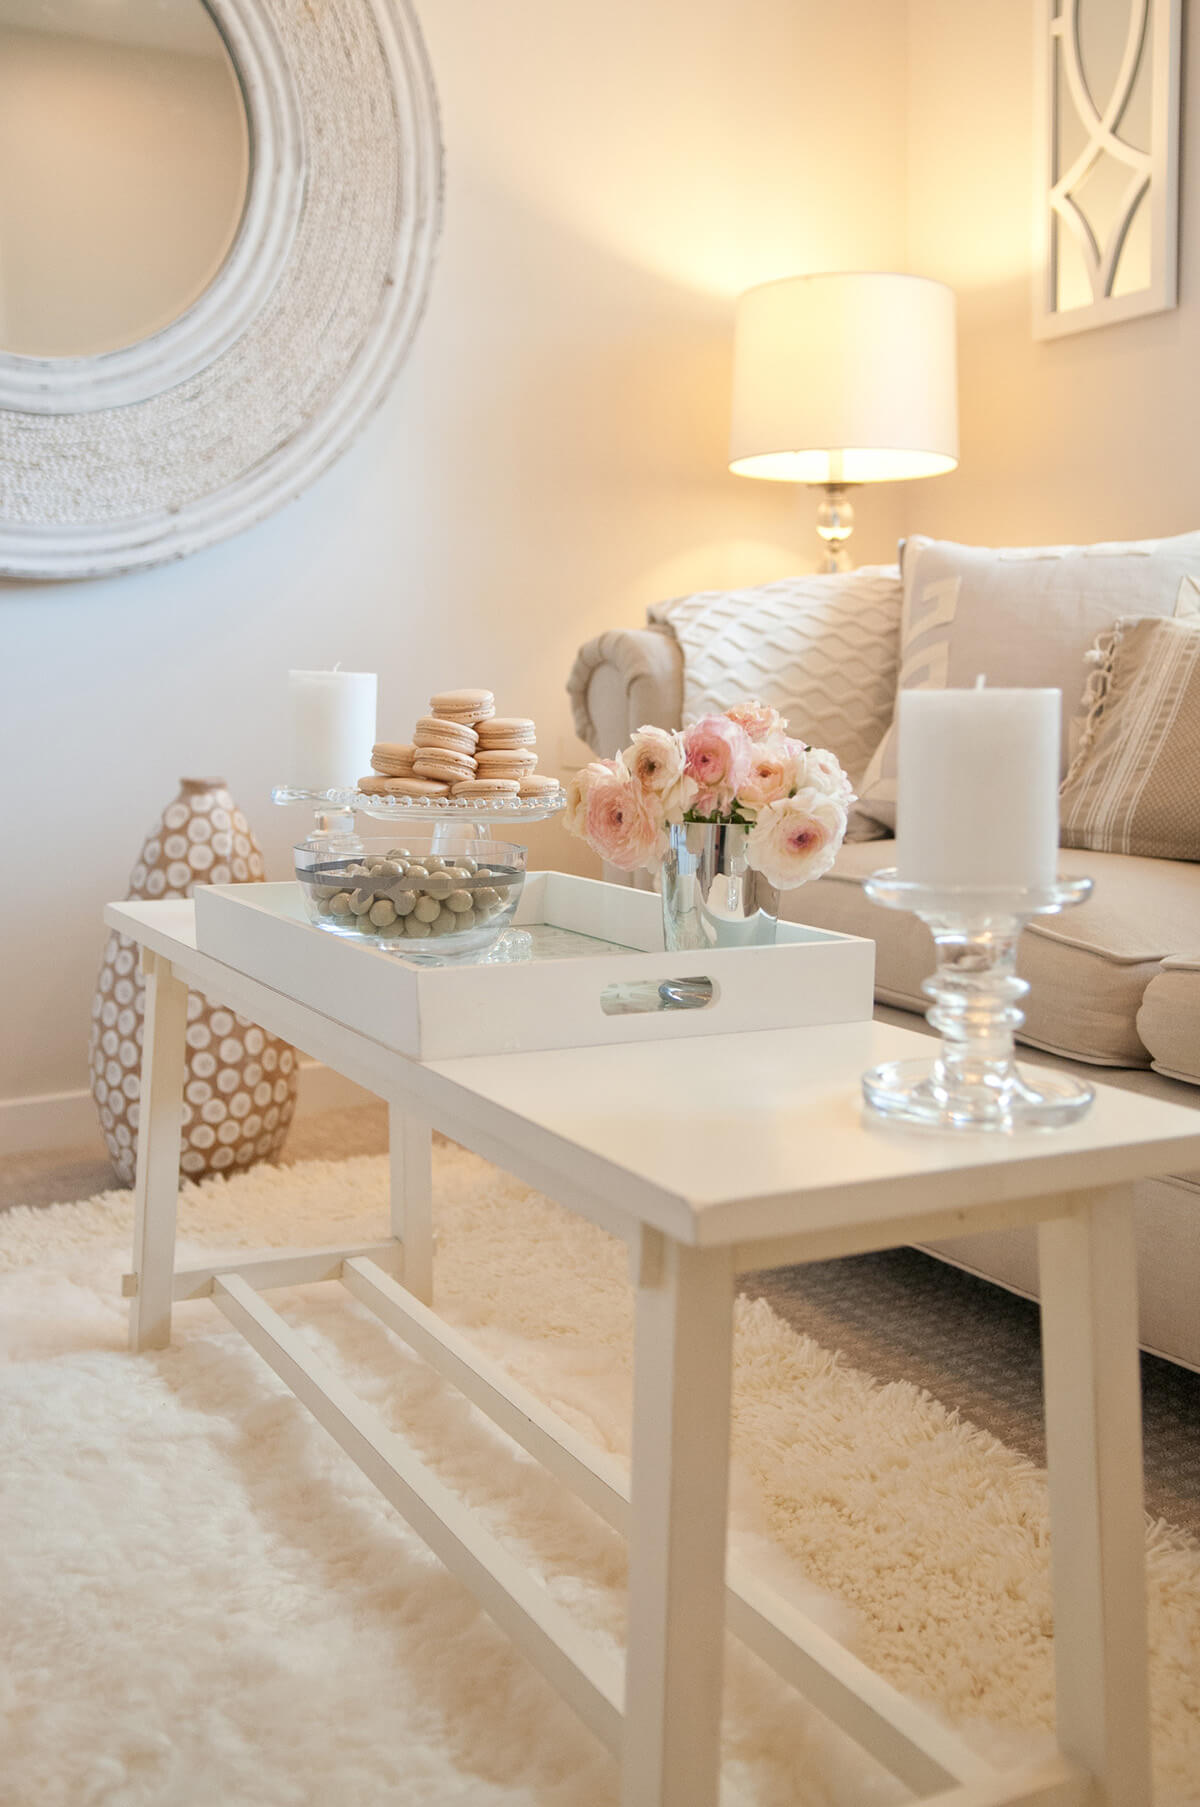 best coffee table decorating ideas and designs for homebnc accent decor champagne pink white cottage chic tray plain cloths storage with baskets pottery barn sawyer outdoor side